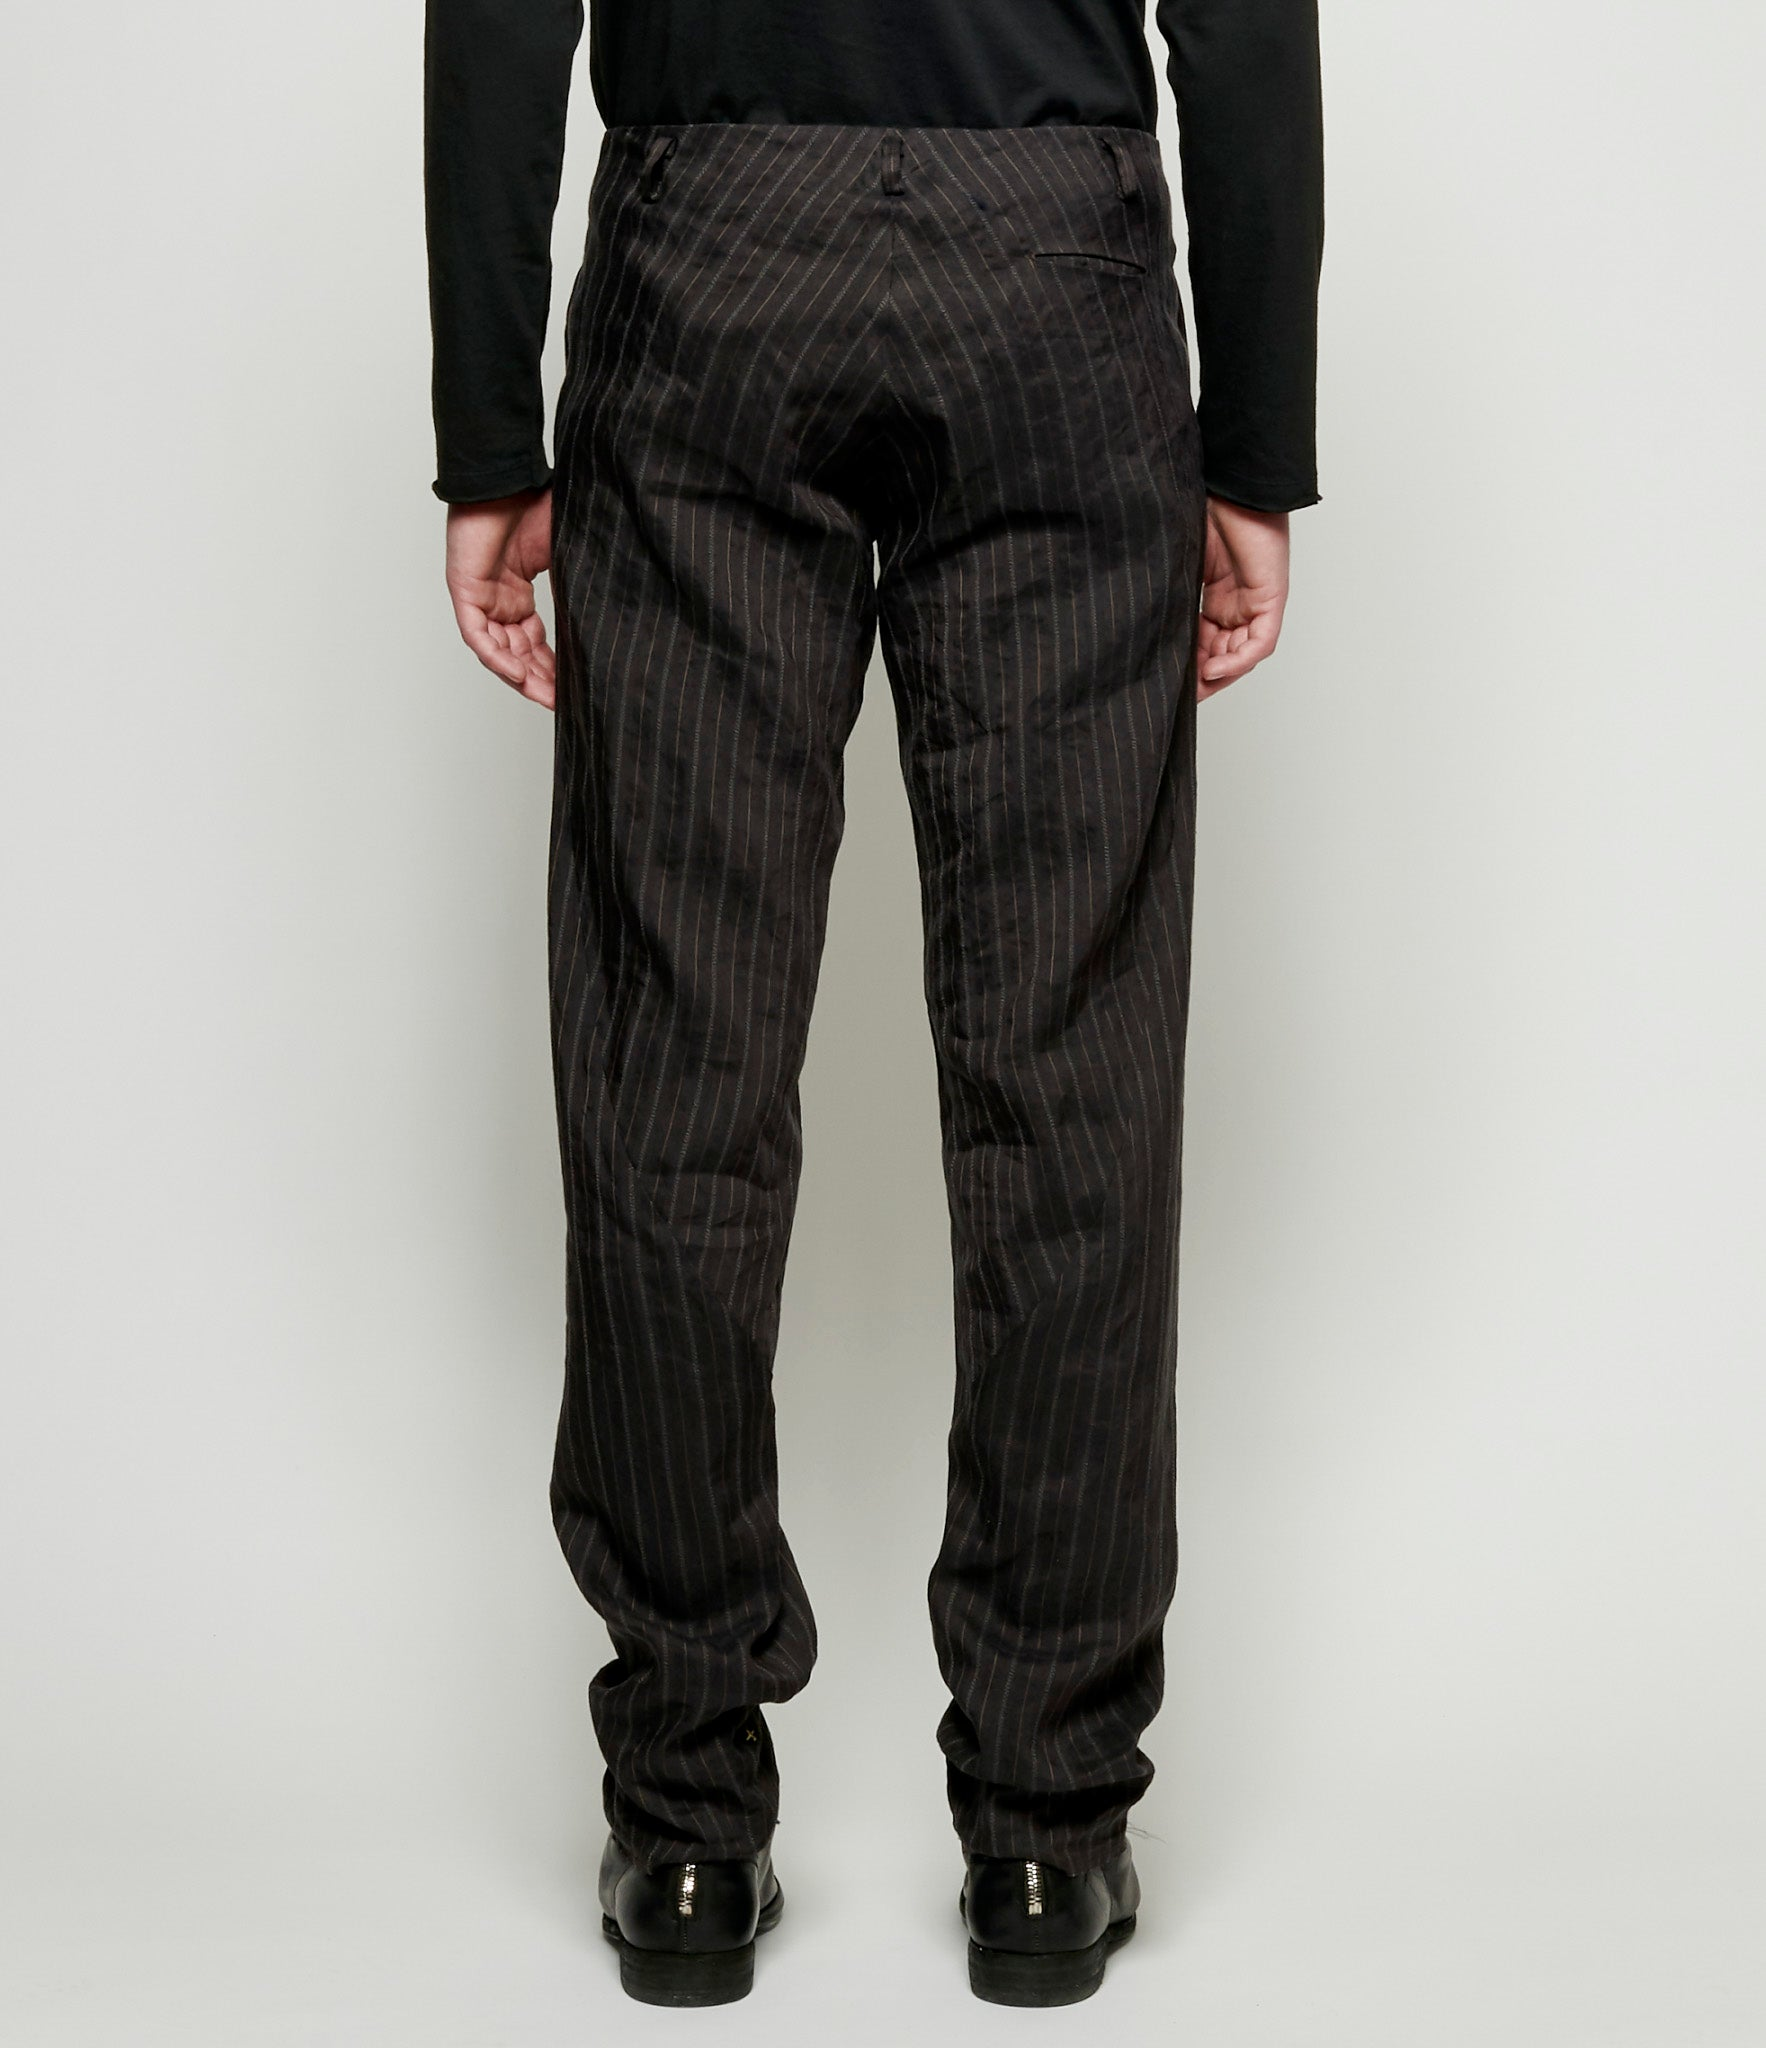 m.a+ Vertical Pocket Linen Herringbone Twill Easy Fit Pants